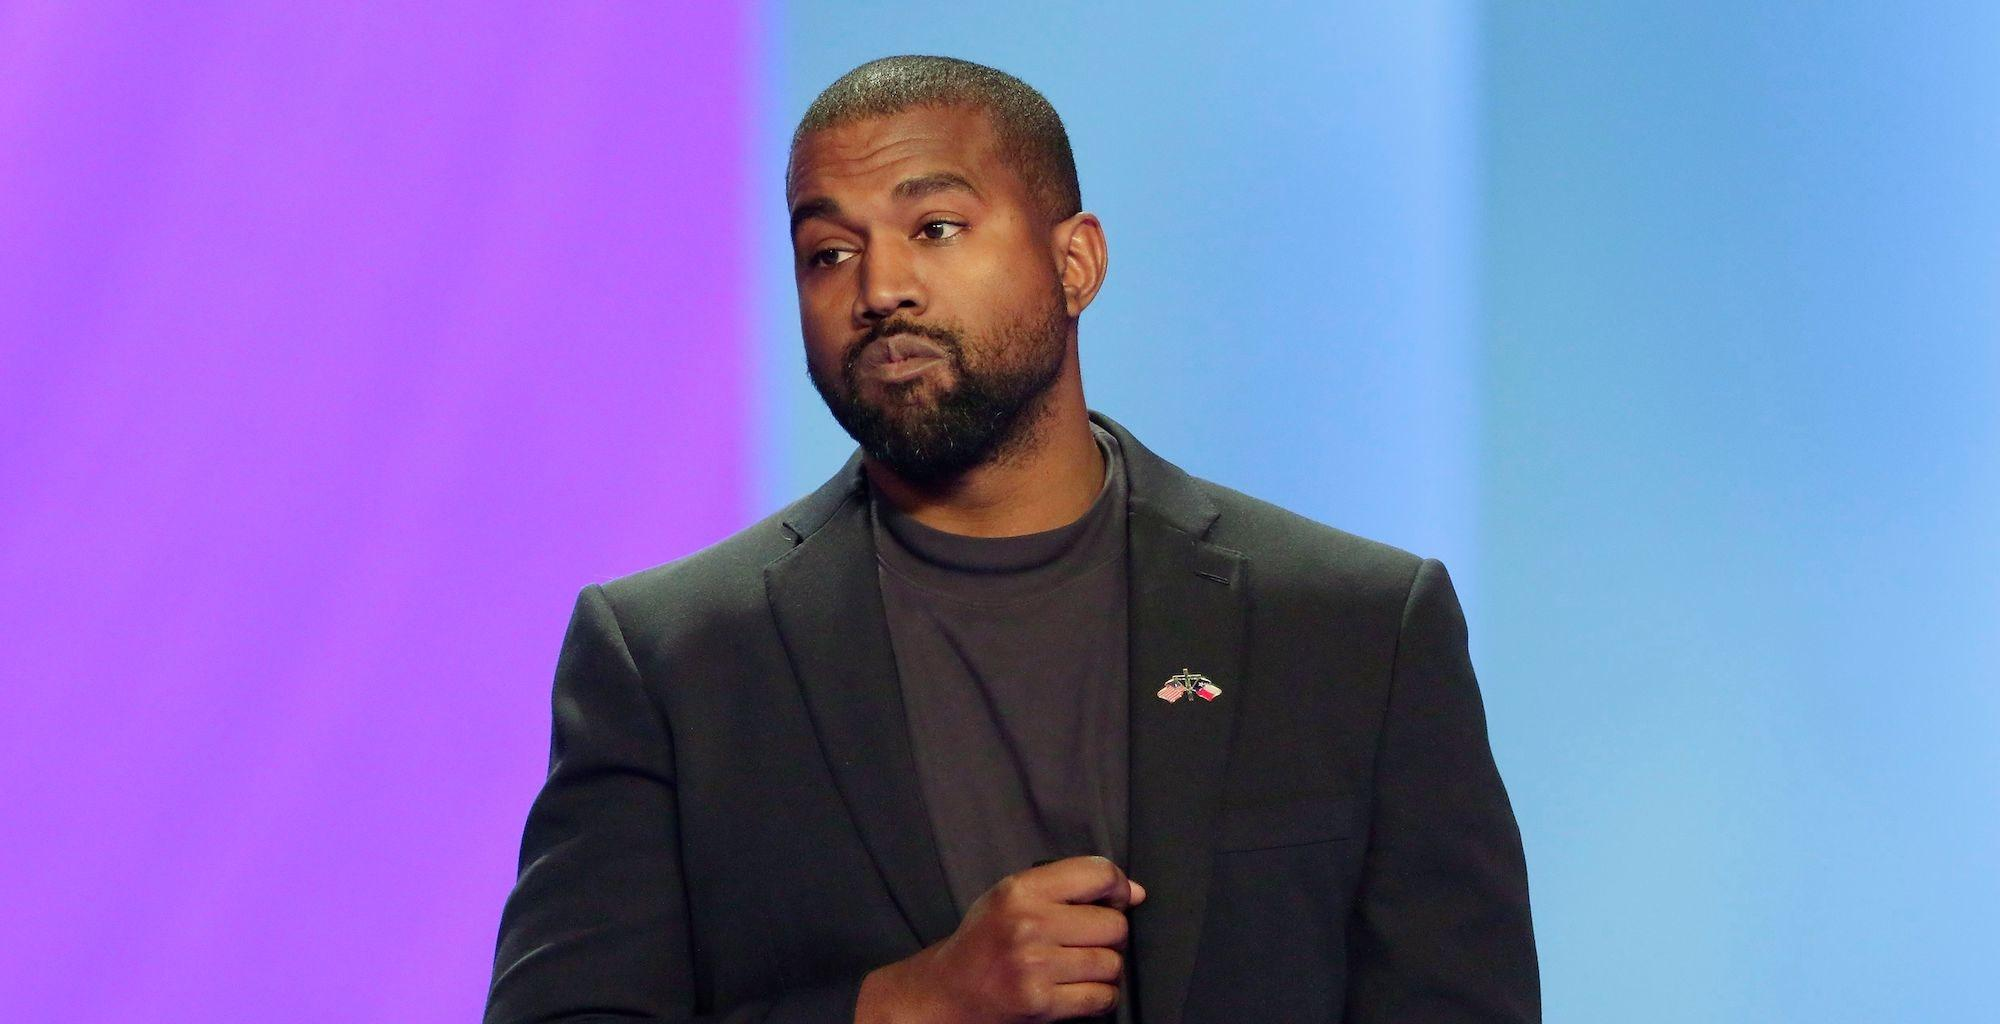 Kanye West Proudly Votes For Himself And Social Media Drags Him!